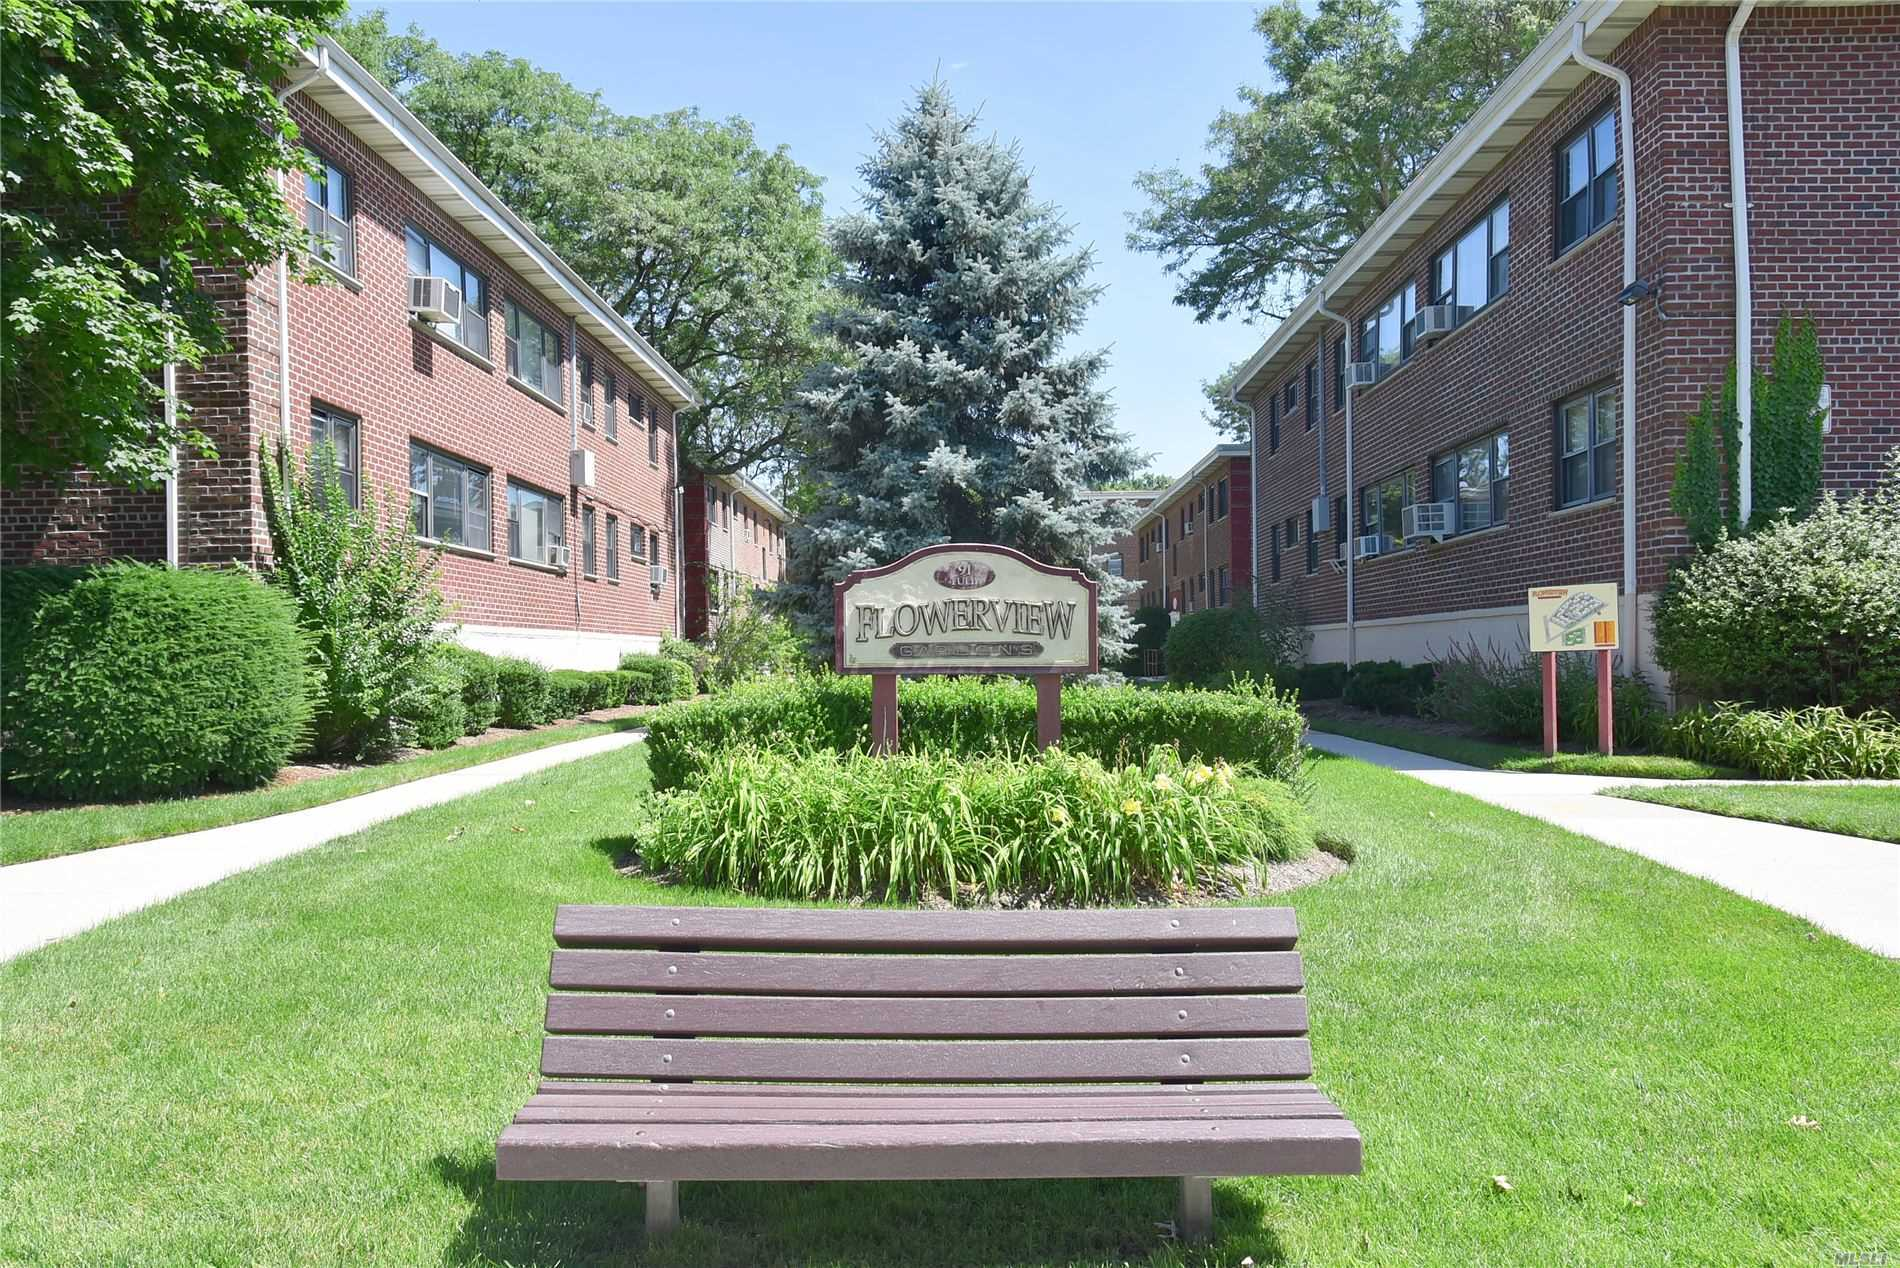 Property for sale at 91 Tulip Ave Unit B1, Floral Park,  New York 11001